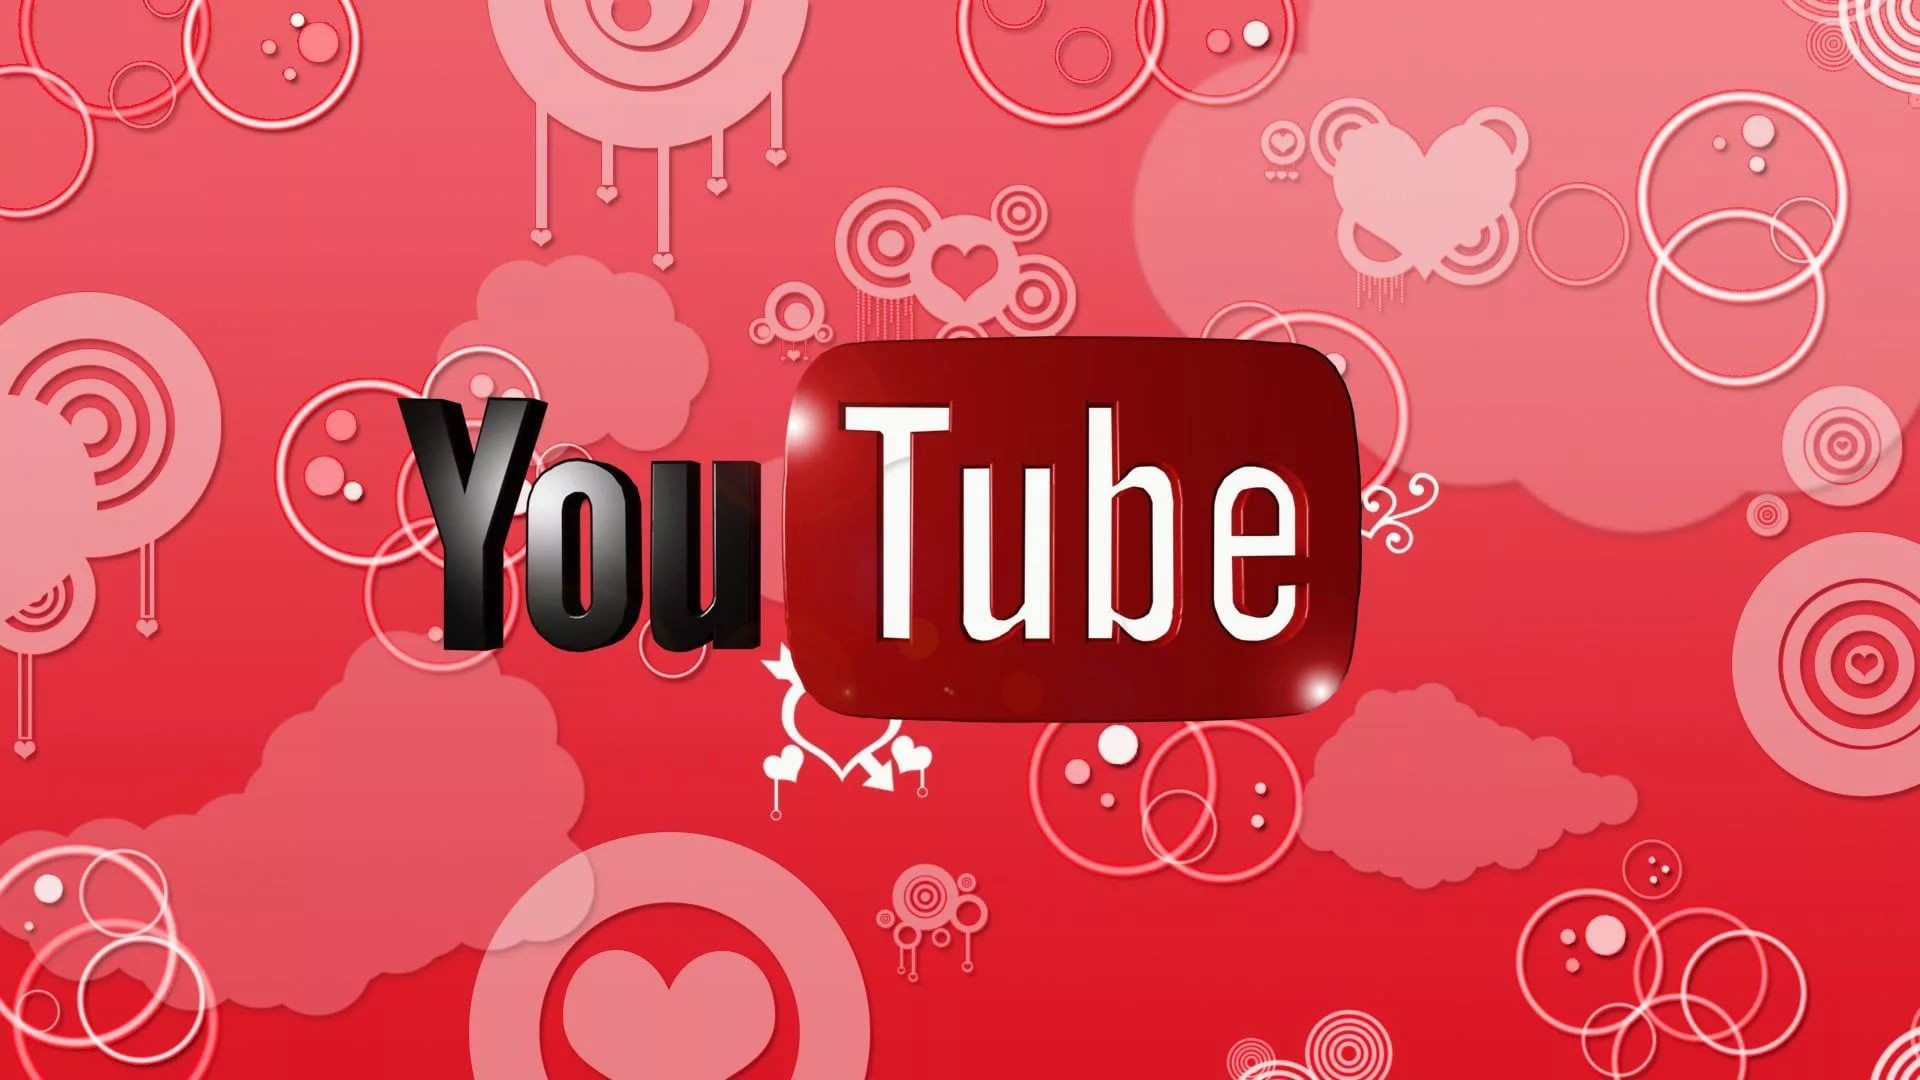 Youtube Background Wallpaper HD